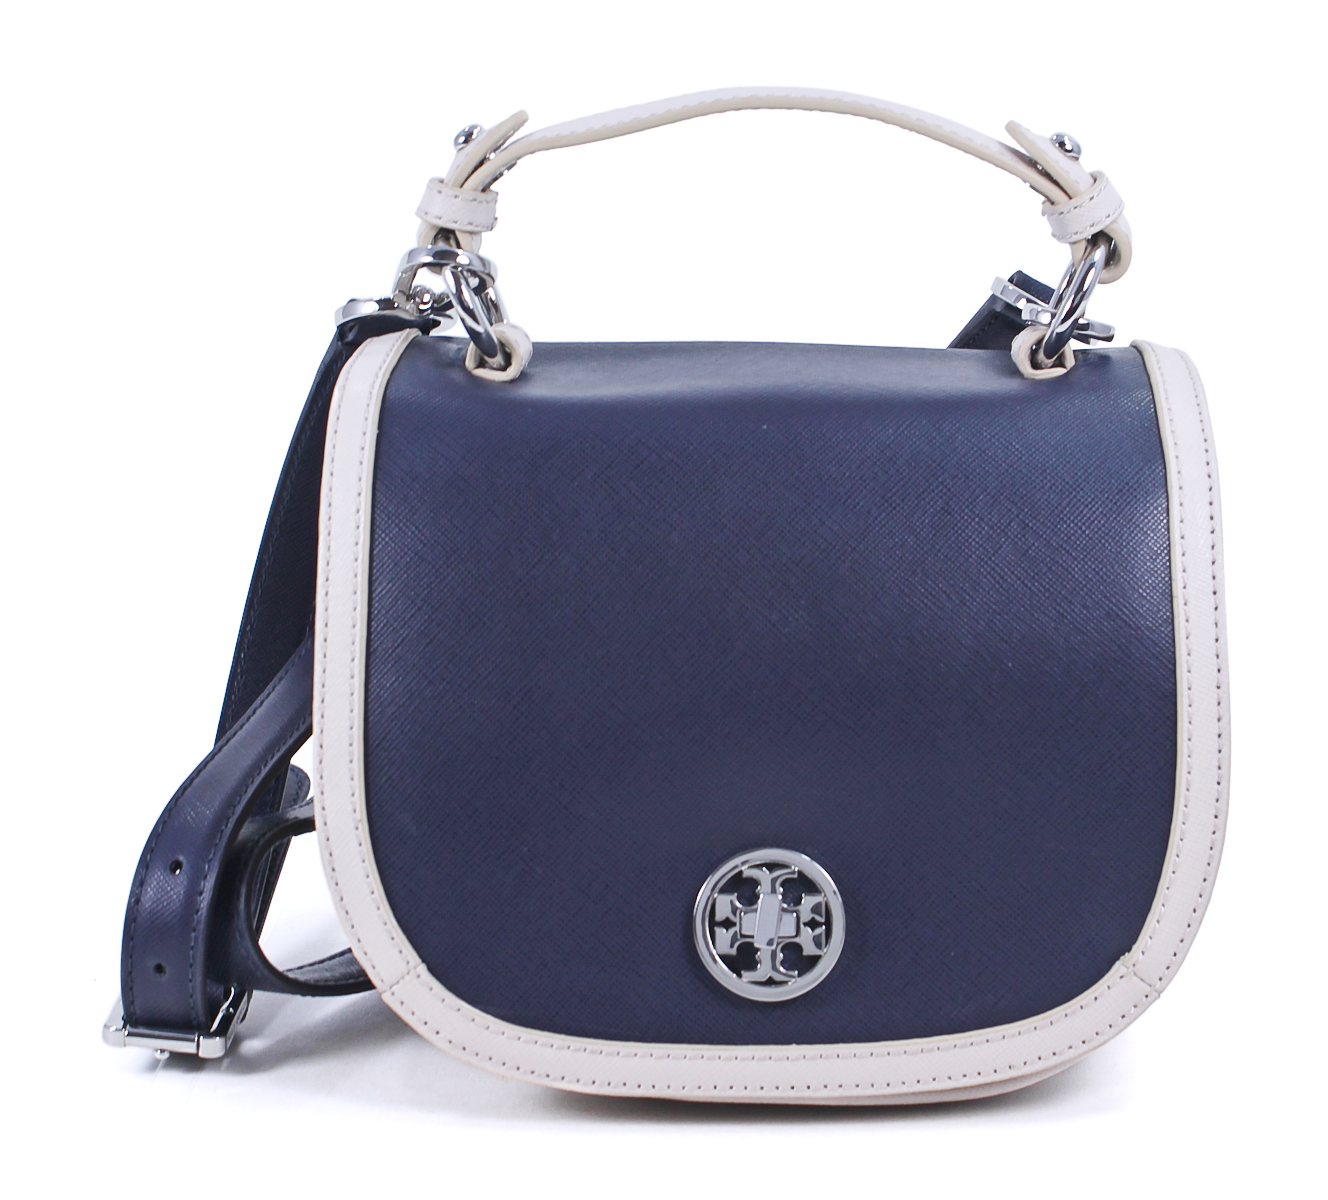 authentic burberry bags outlet online  outletcouture is the